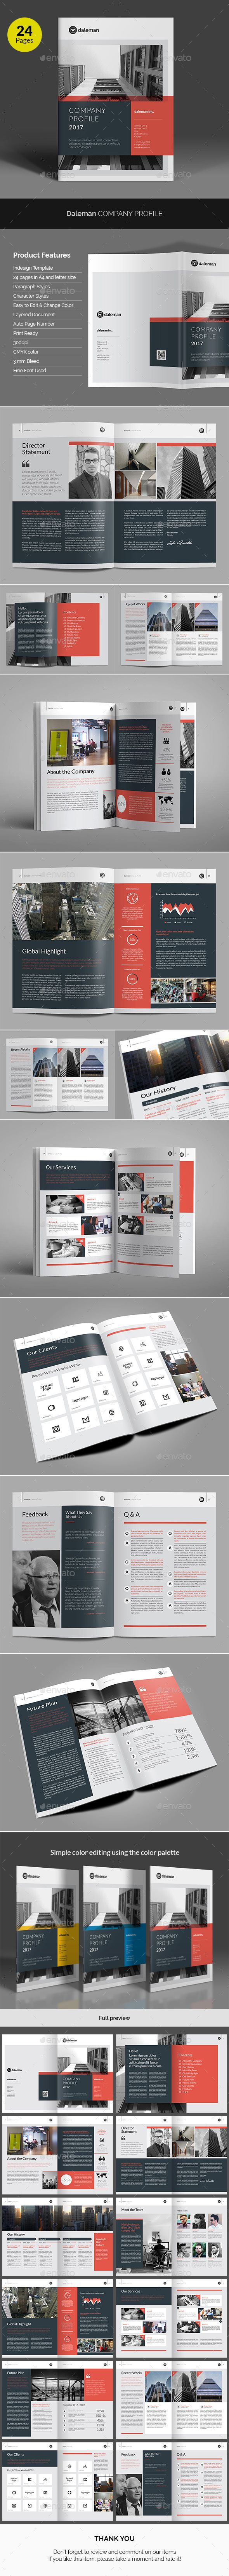 Daleman Company Profile | Indesign templates, Company profile and ...